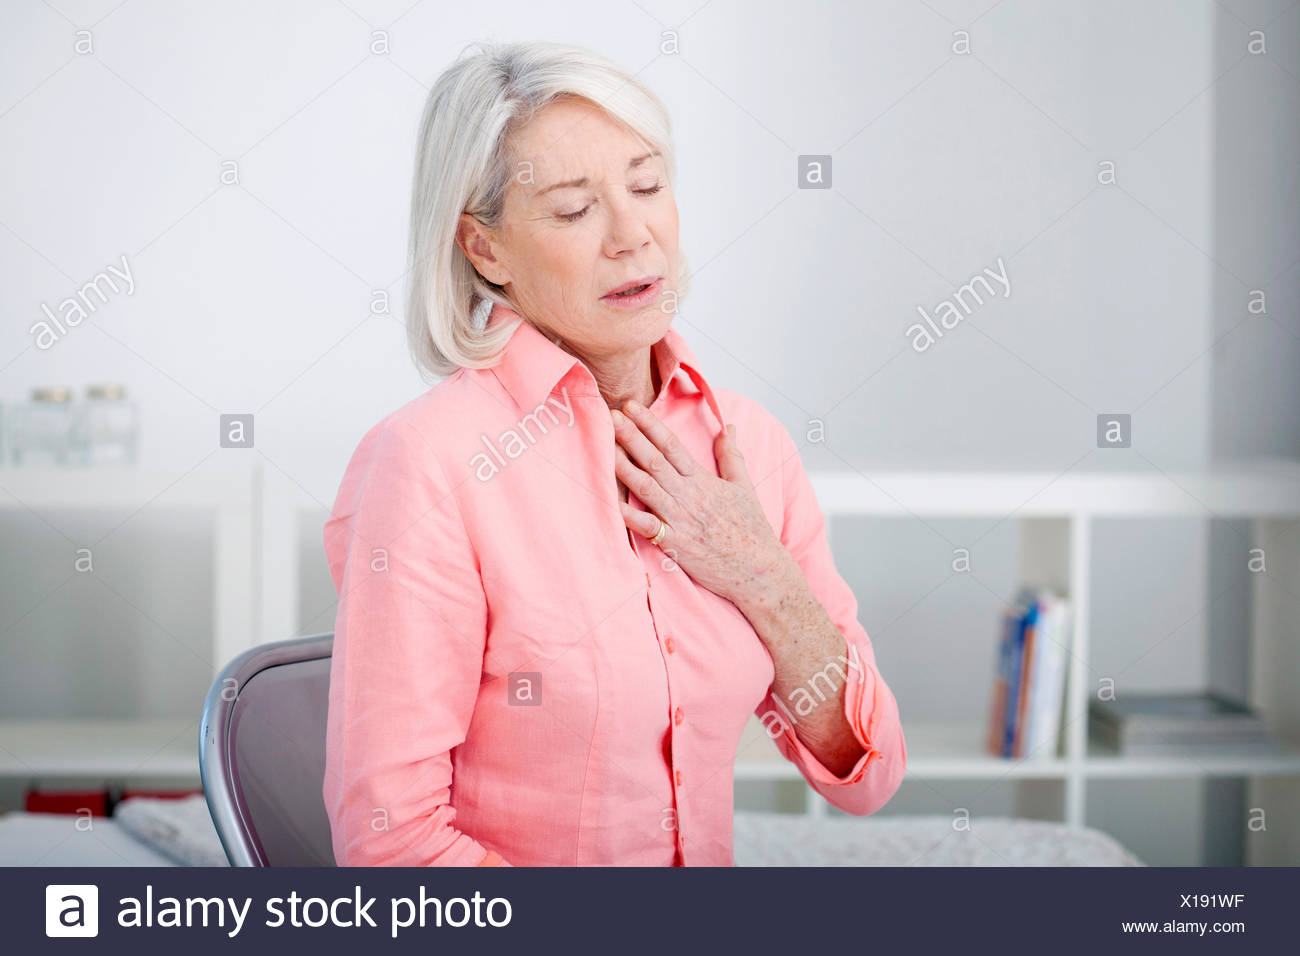 Asthma, elderly person - Stock Image